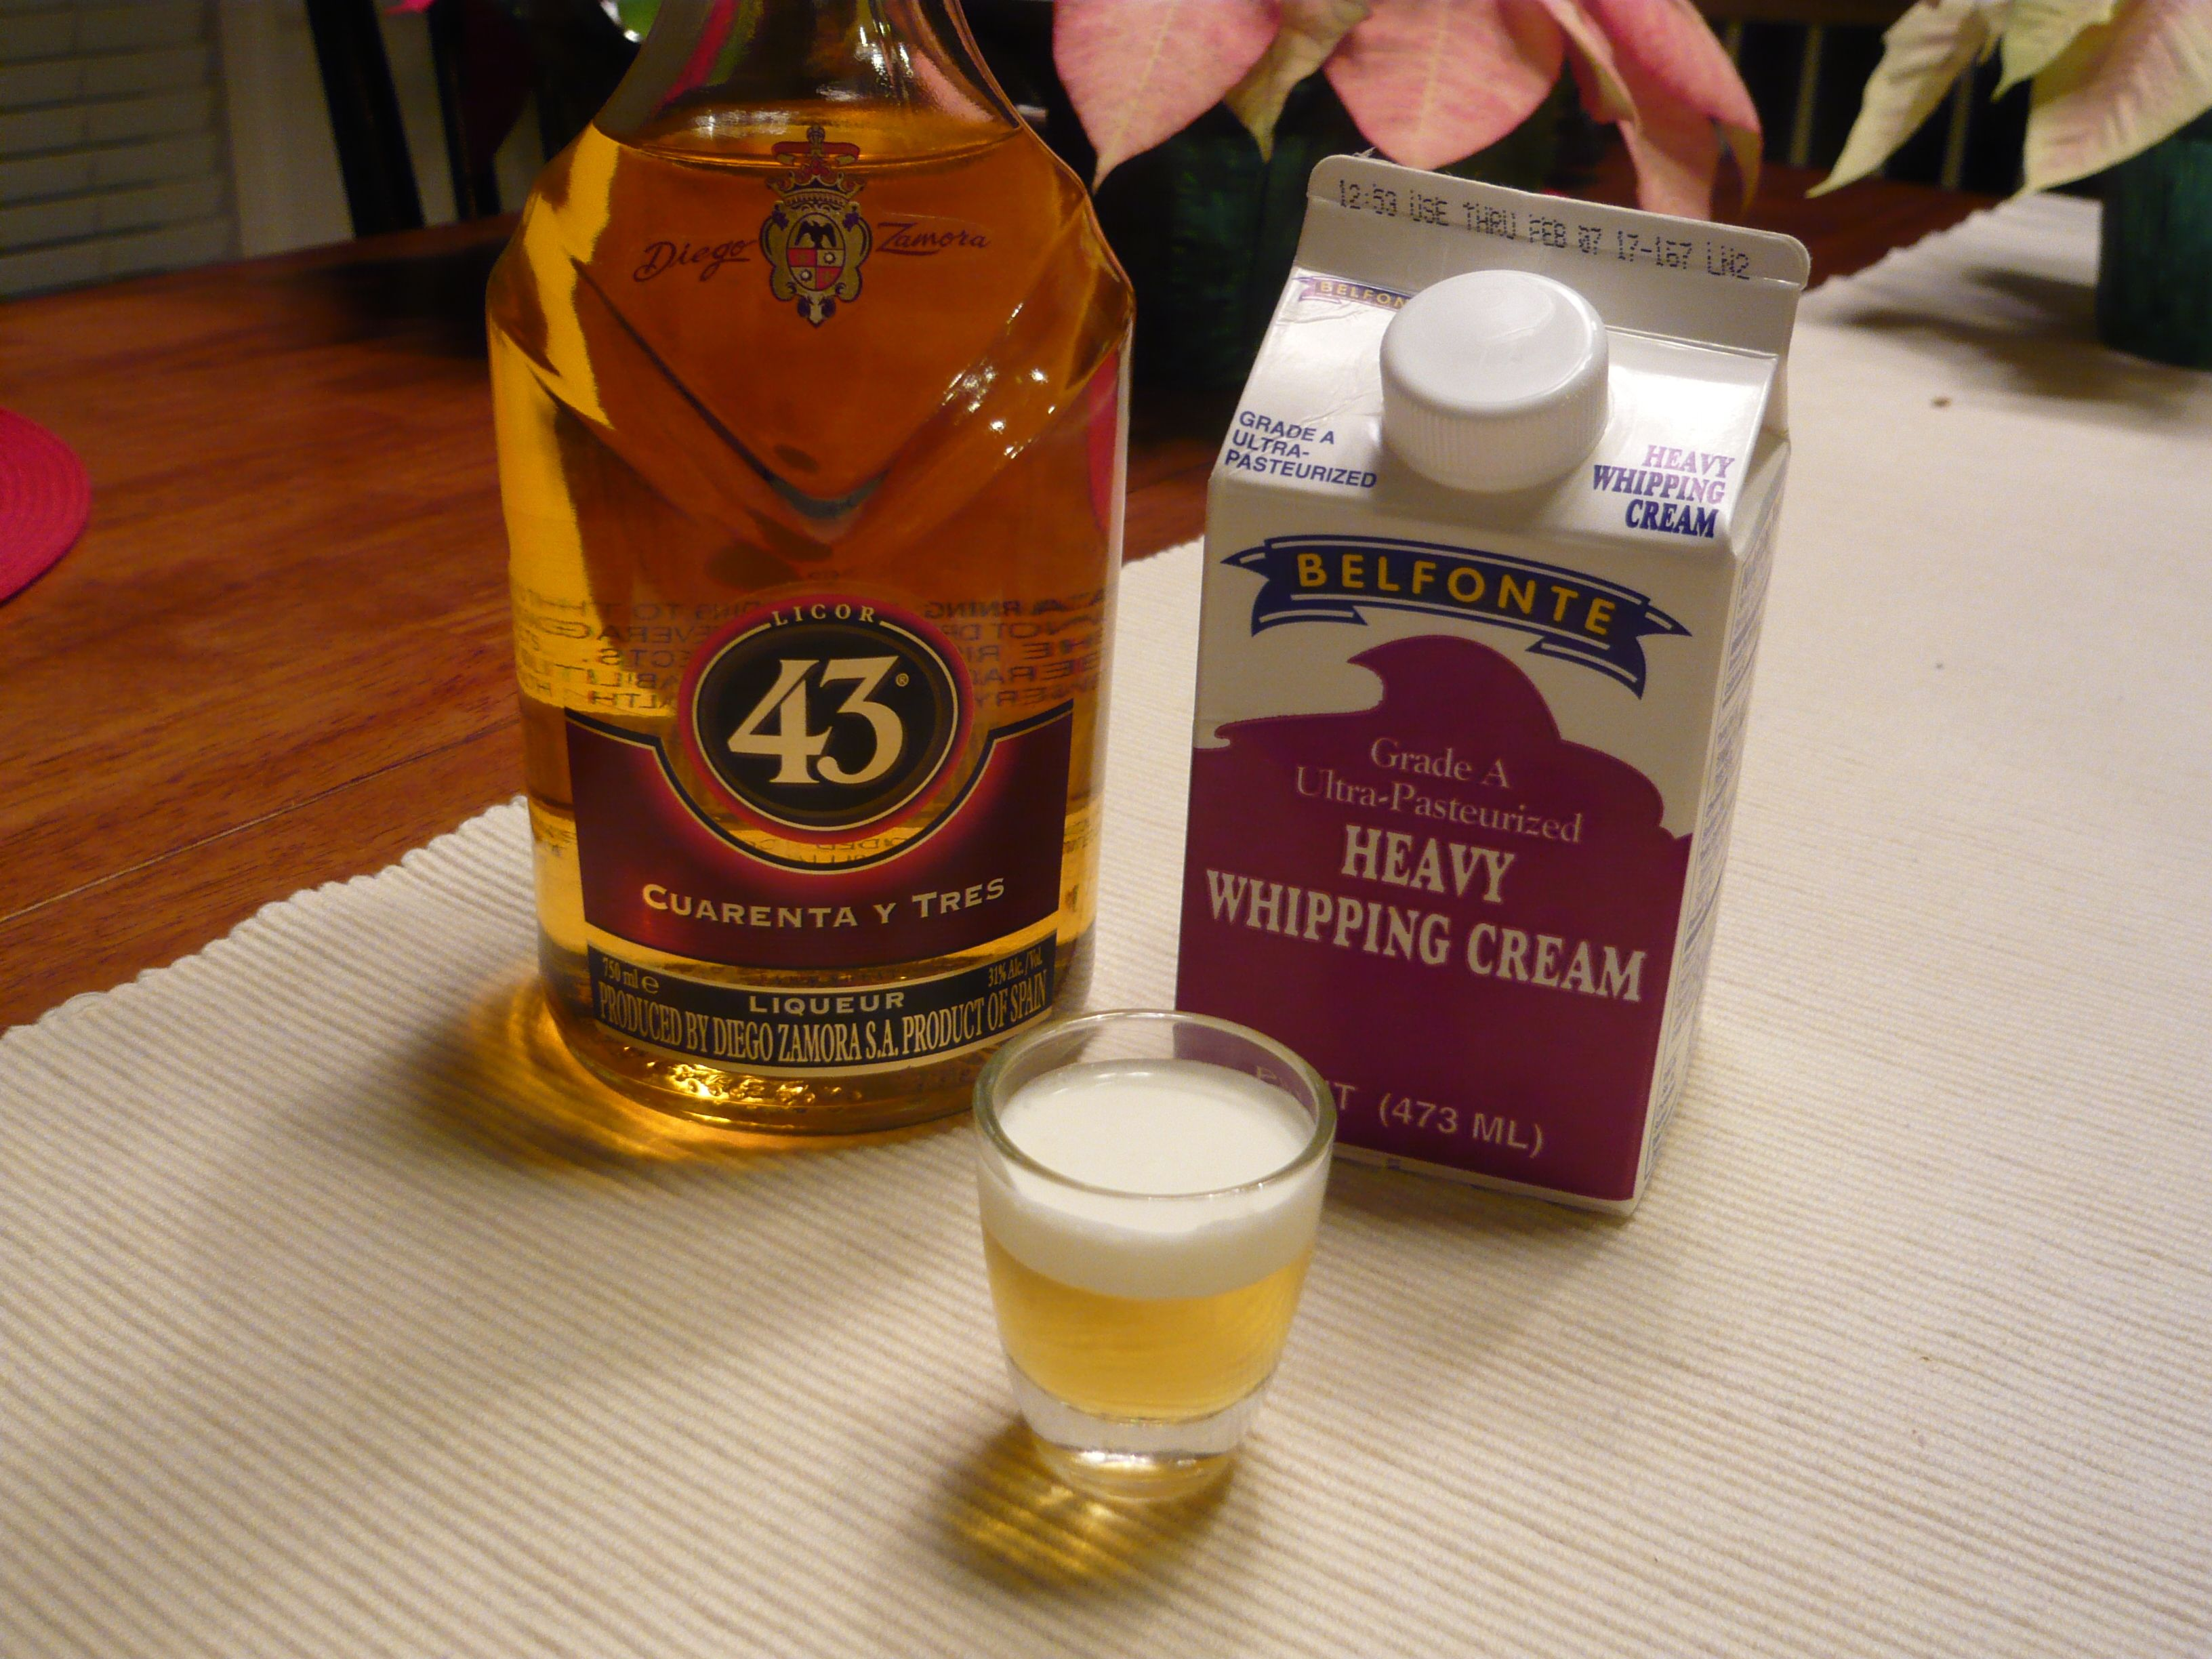 Little Beer Shot Licor 43 And Whipping Cream I M Obsessed With These So Good You People Have To Try Them Beer Shot Mini Beer Shots Shot Drinks